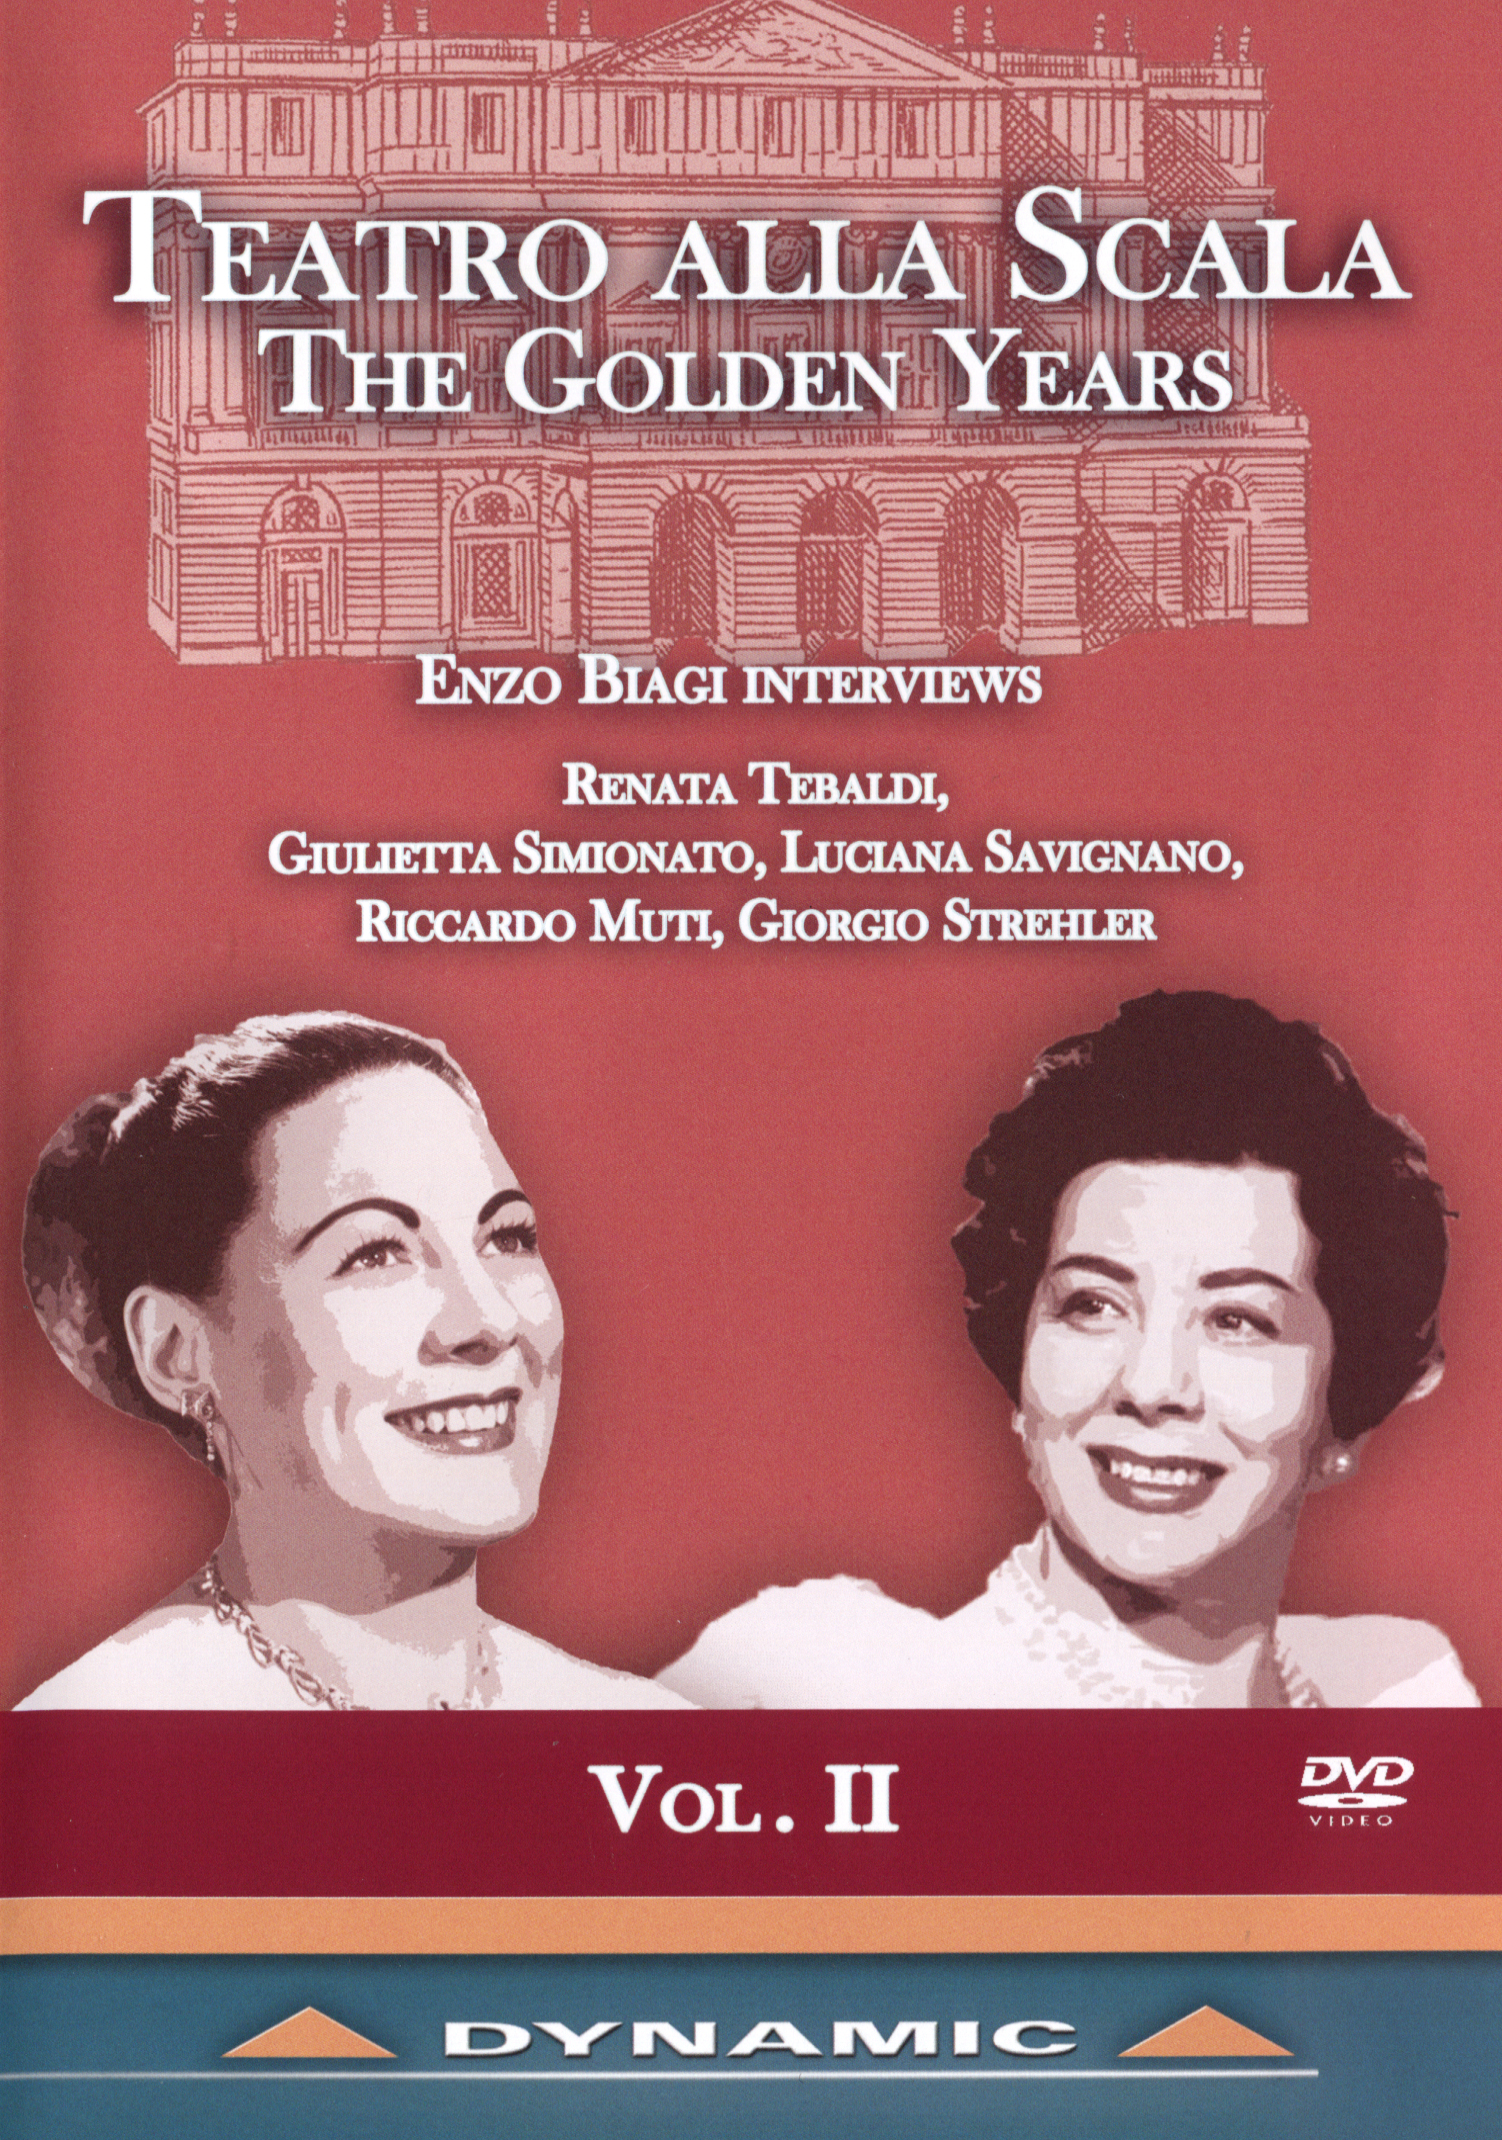 Teatro Alla Scala: The Golden Years - Vol. II